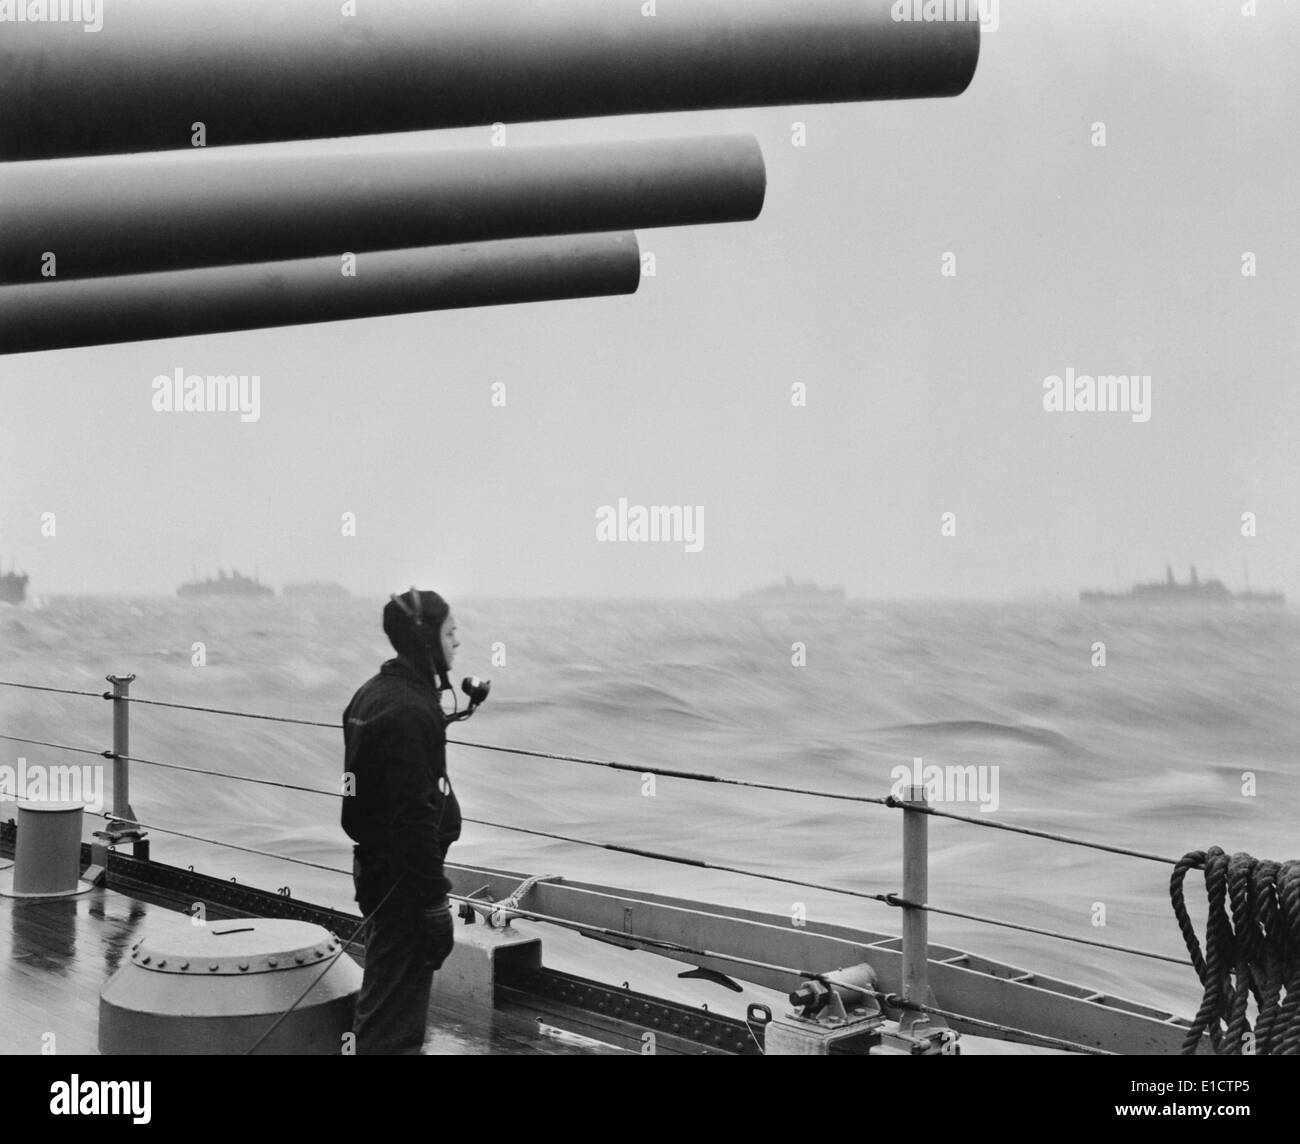 A sailor on a warship keeps alert watch over merchant ships in a convoy. U.S. warships protected convoys of 30 to 70 ships on Stock Photo